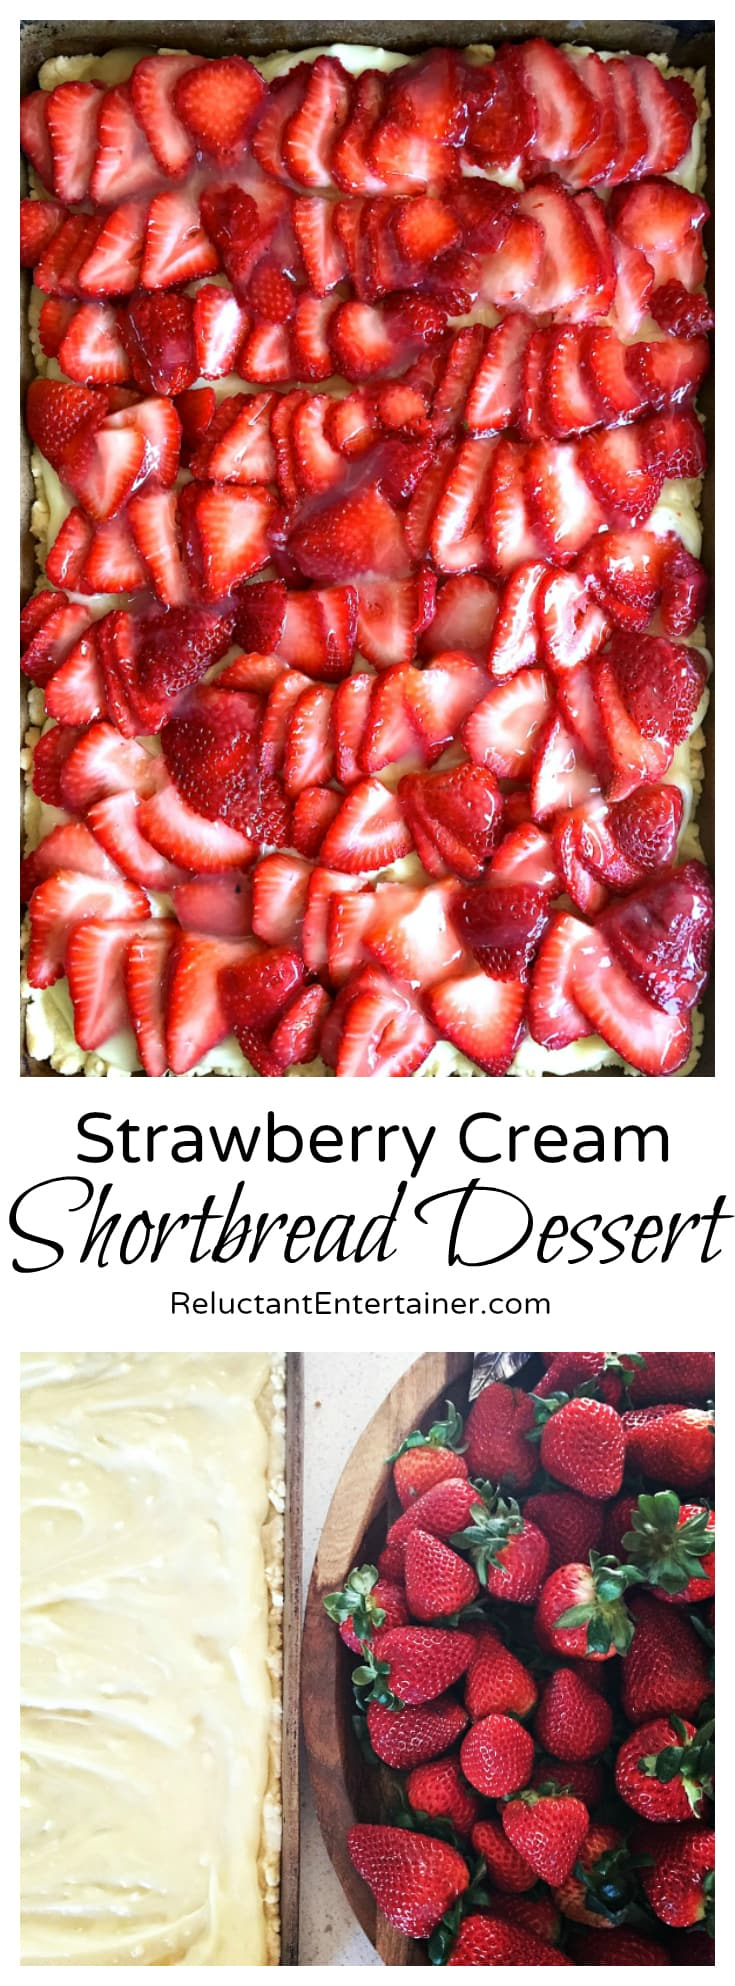 Strawberry Cream Shortbread Dessert - can feed up to 20 guests!